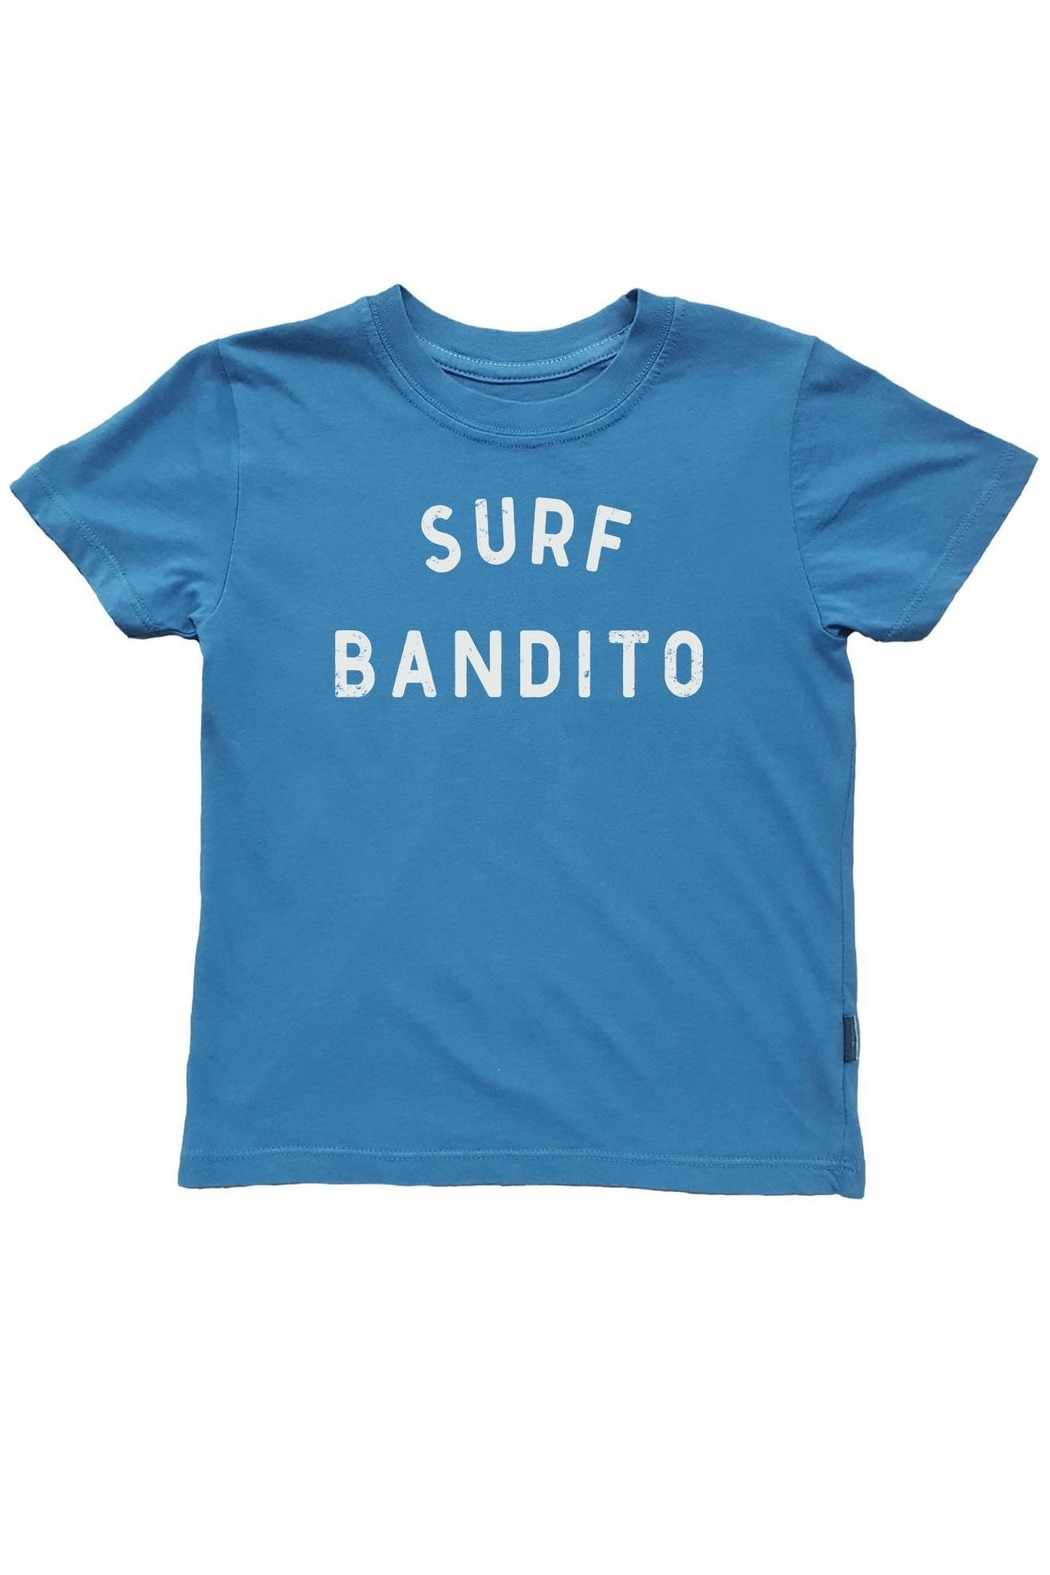 Feather 4 Arrow Surf Bandito Tee - Main Image